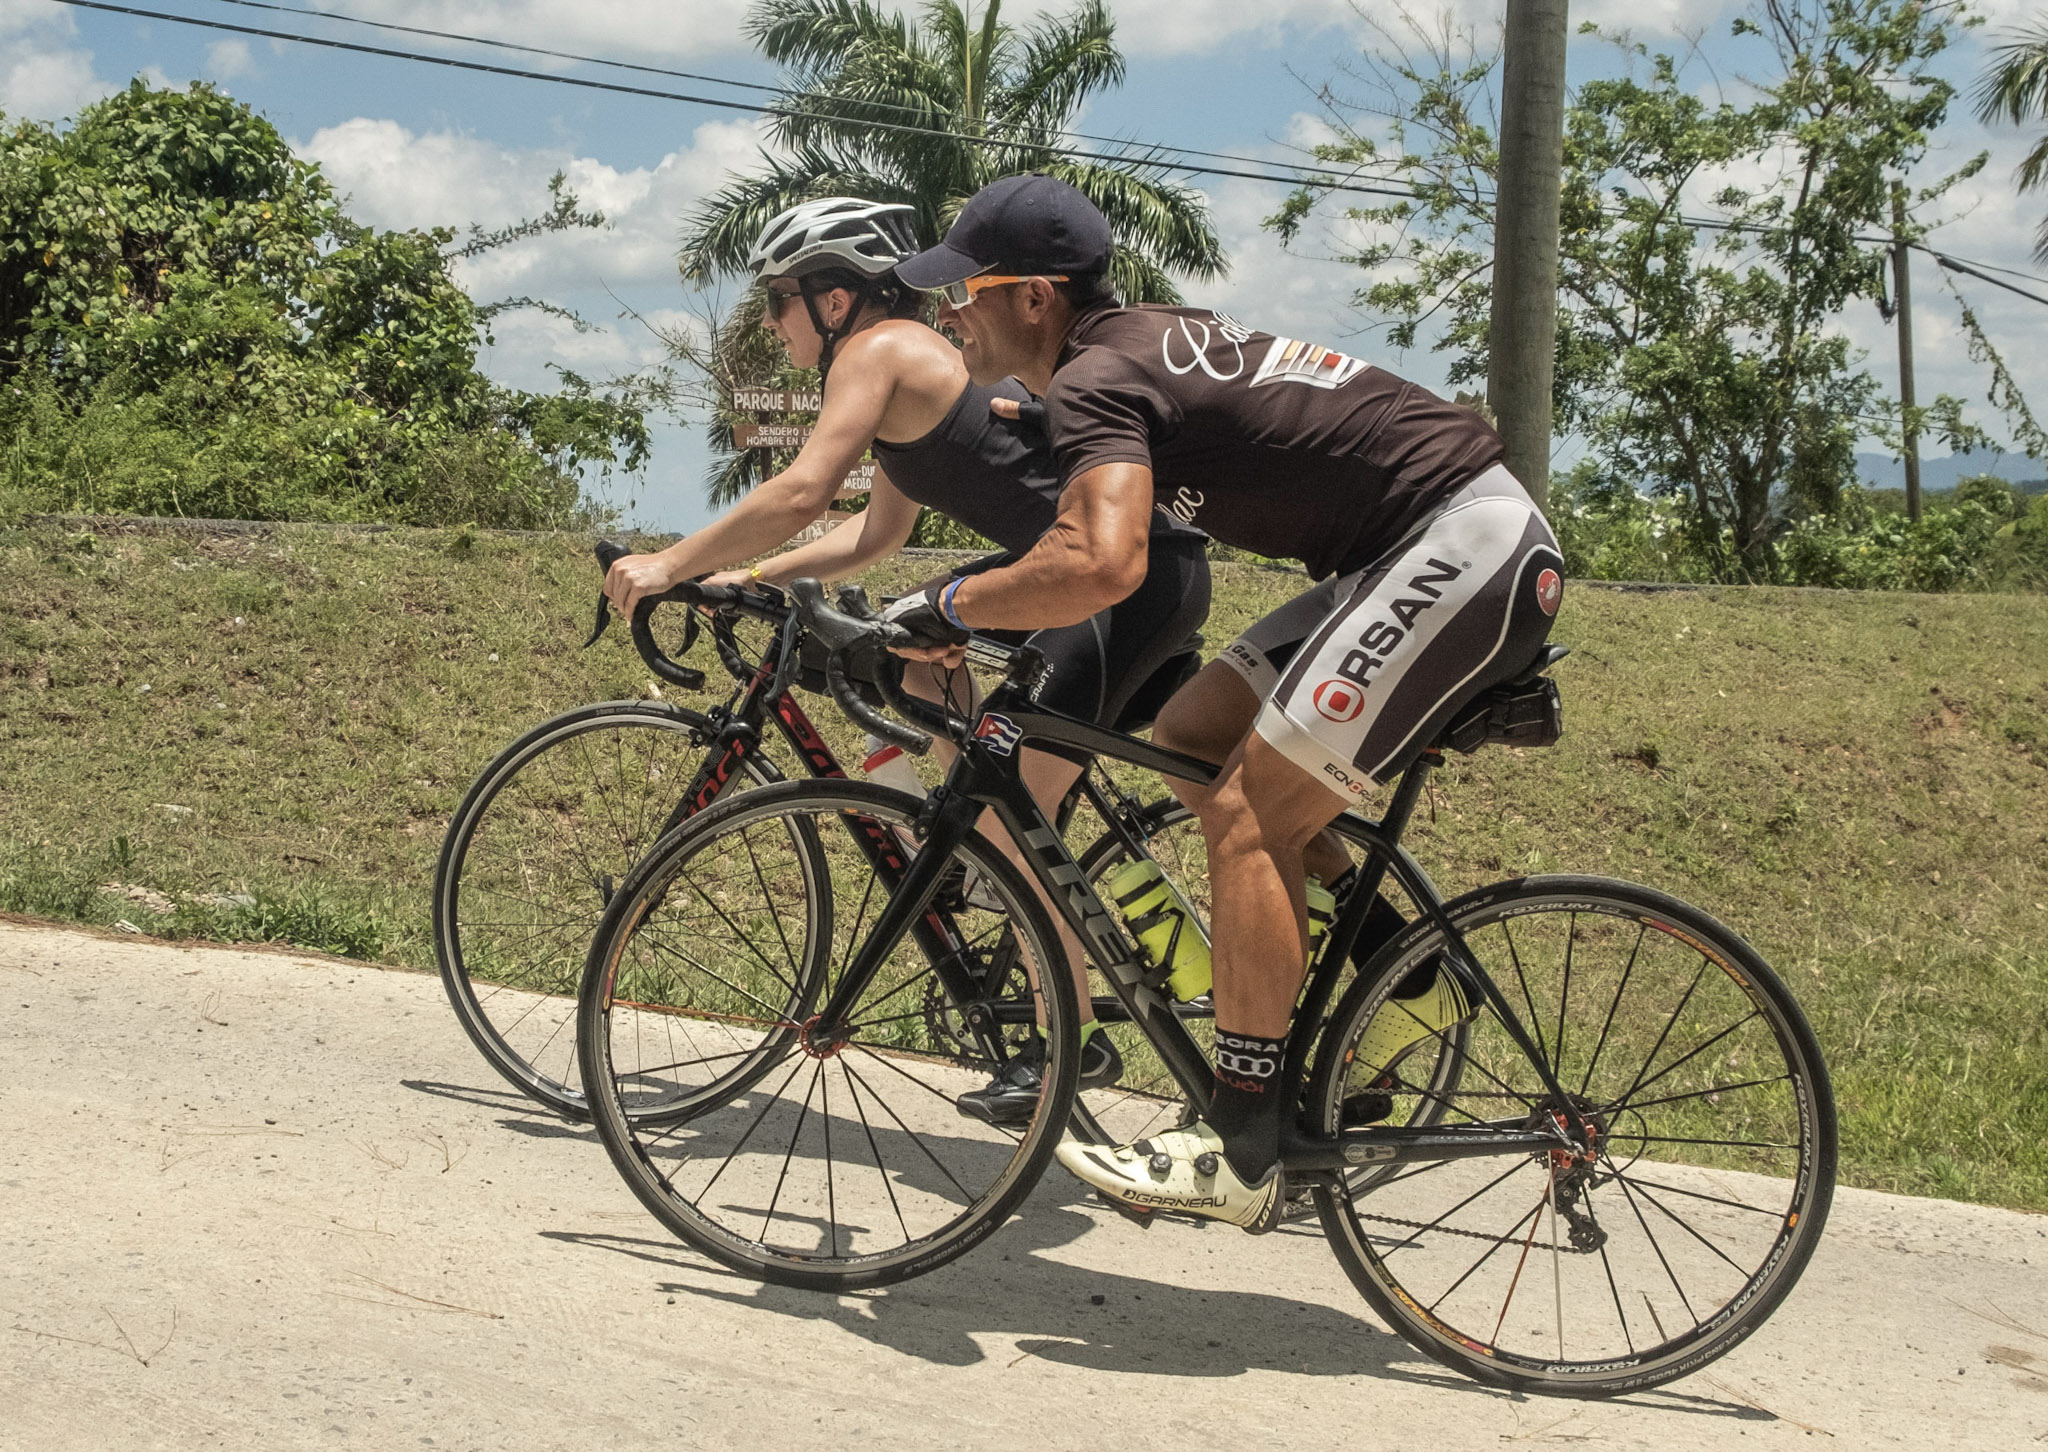 CUB29_Cycling in the Vinales Valley_iStock_Free